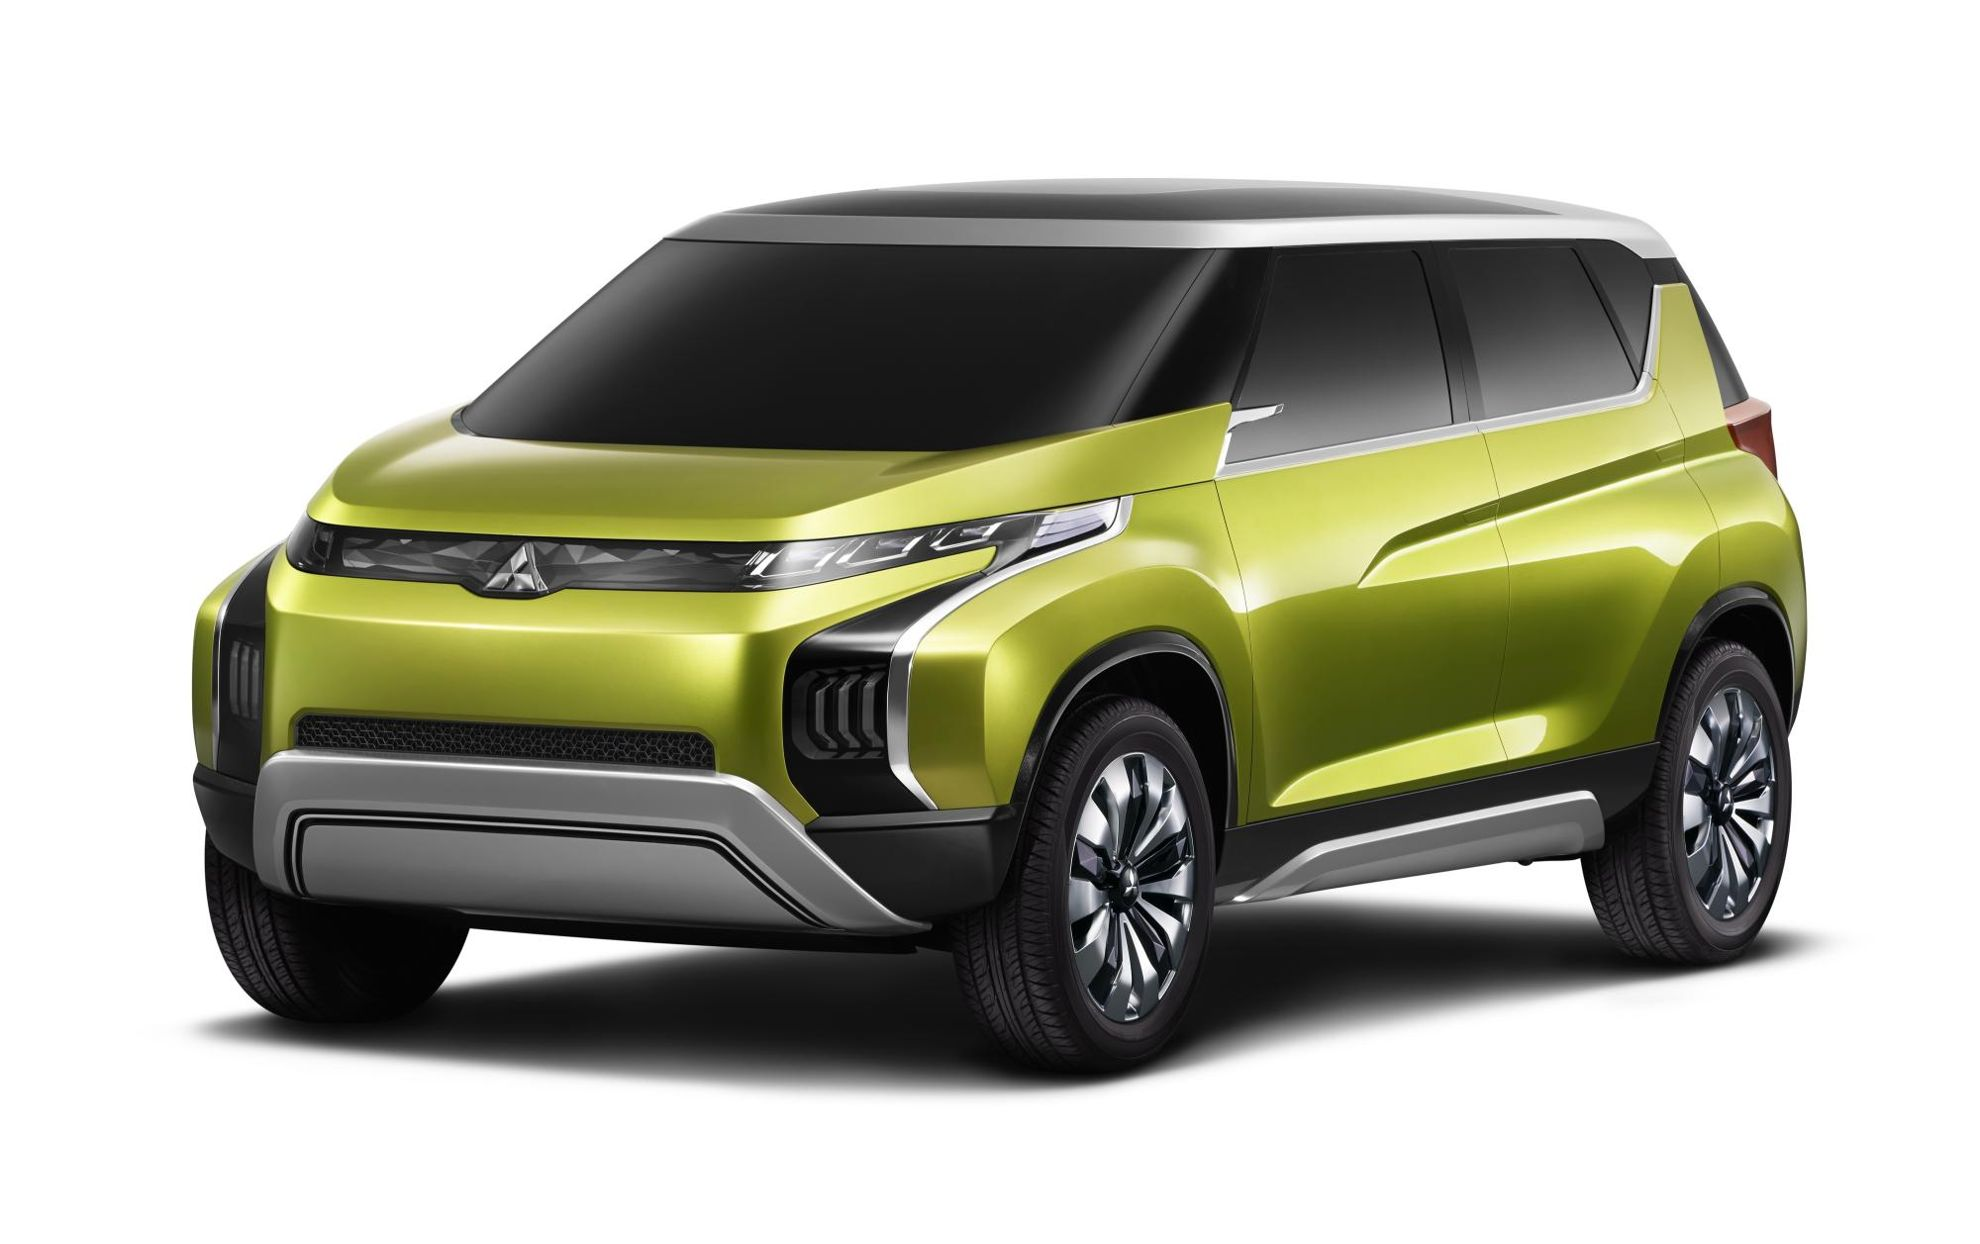 hight resolution of mitsubishi concept ar images tags auto shows japan tokyo motor show